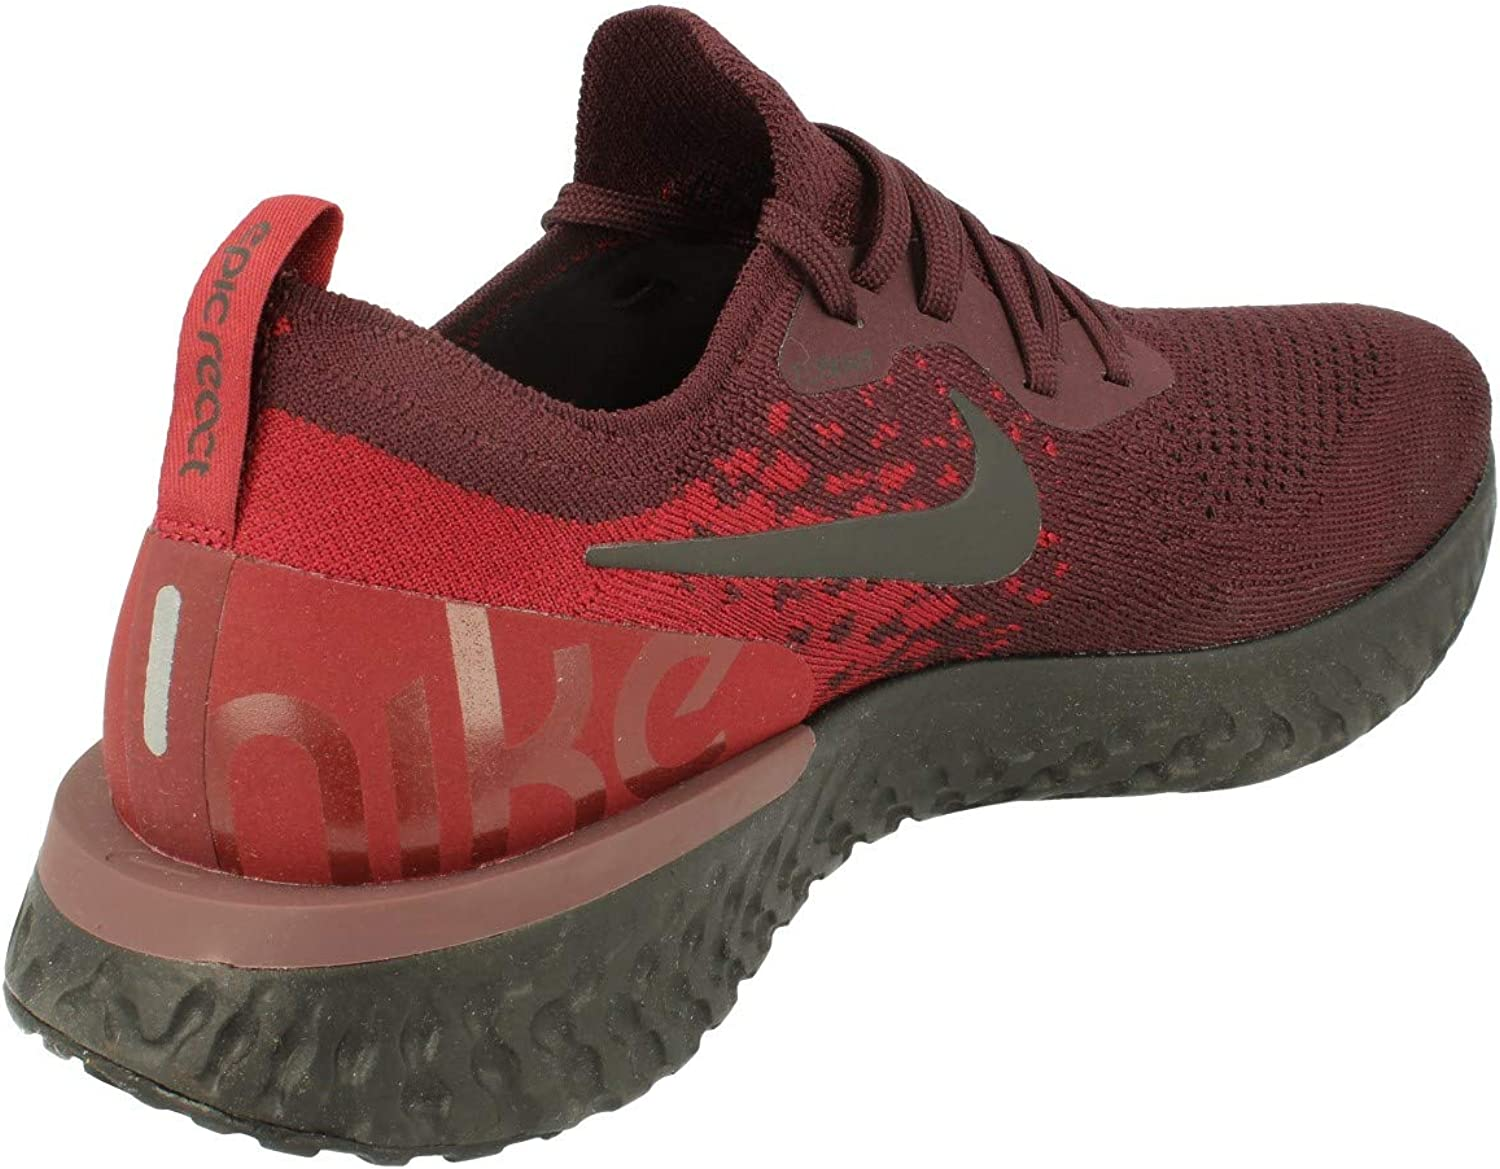 Nike Epic React Flyknit Mens Running Trainers AT0054 Sneakers Shoes UK 7.5 US 8.5 EU 42, deep Burgundy Team red 600